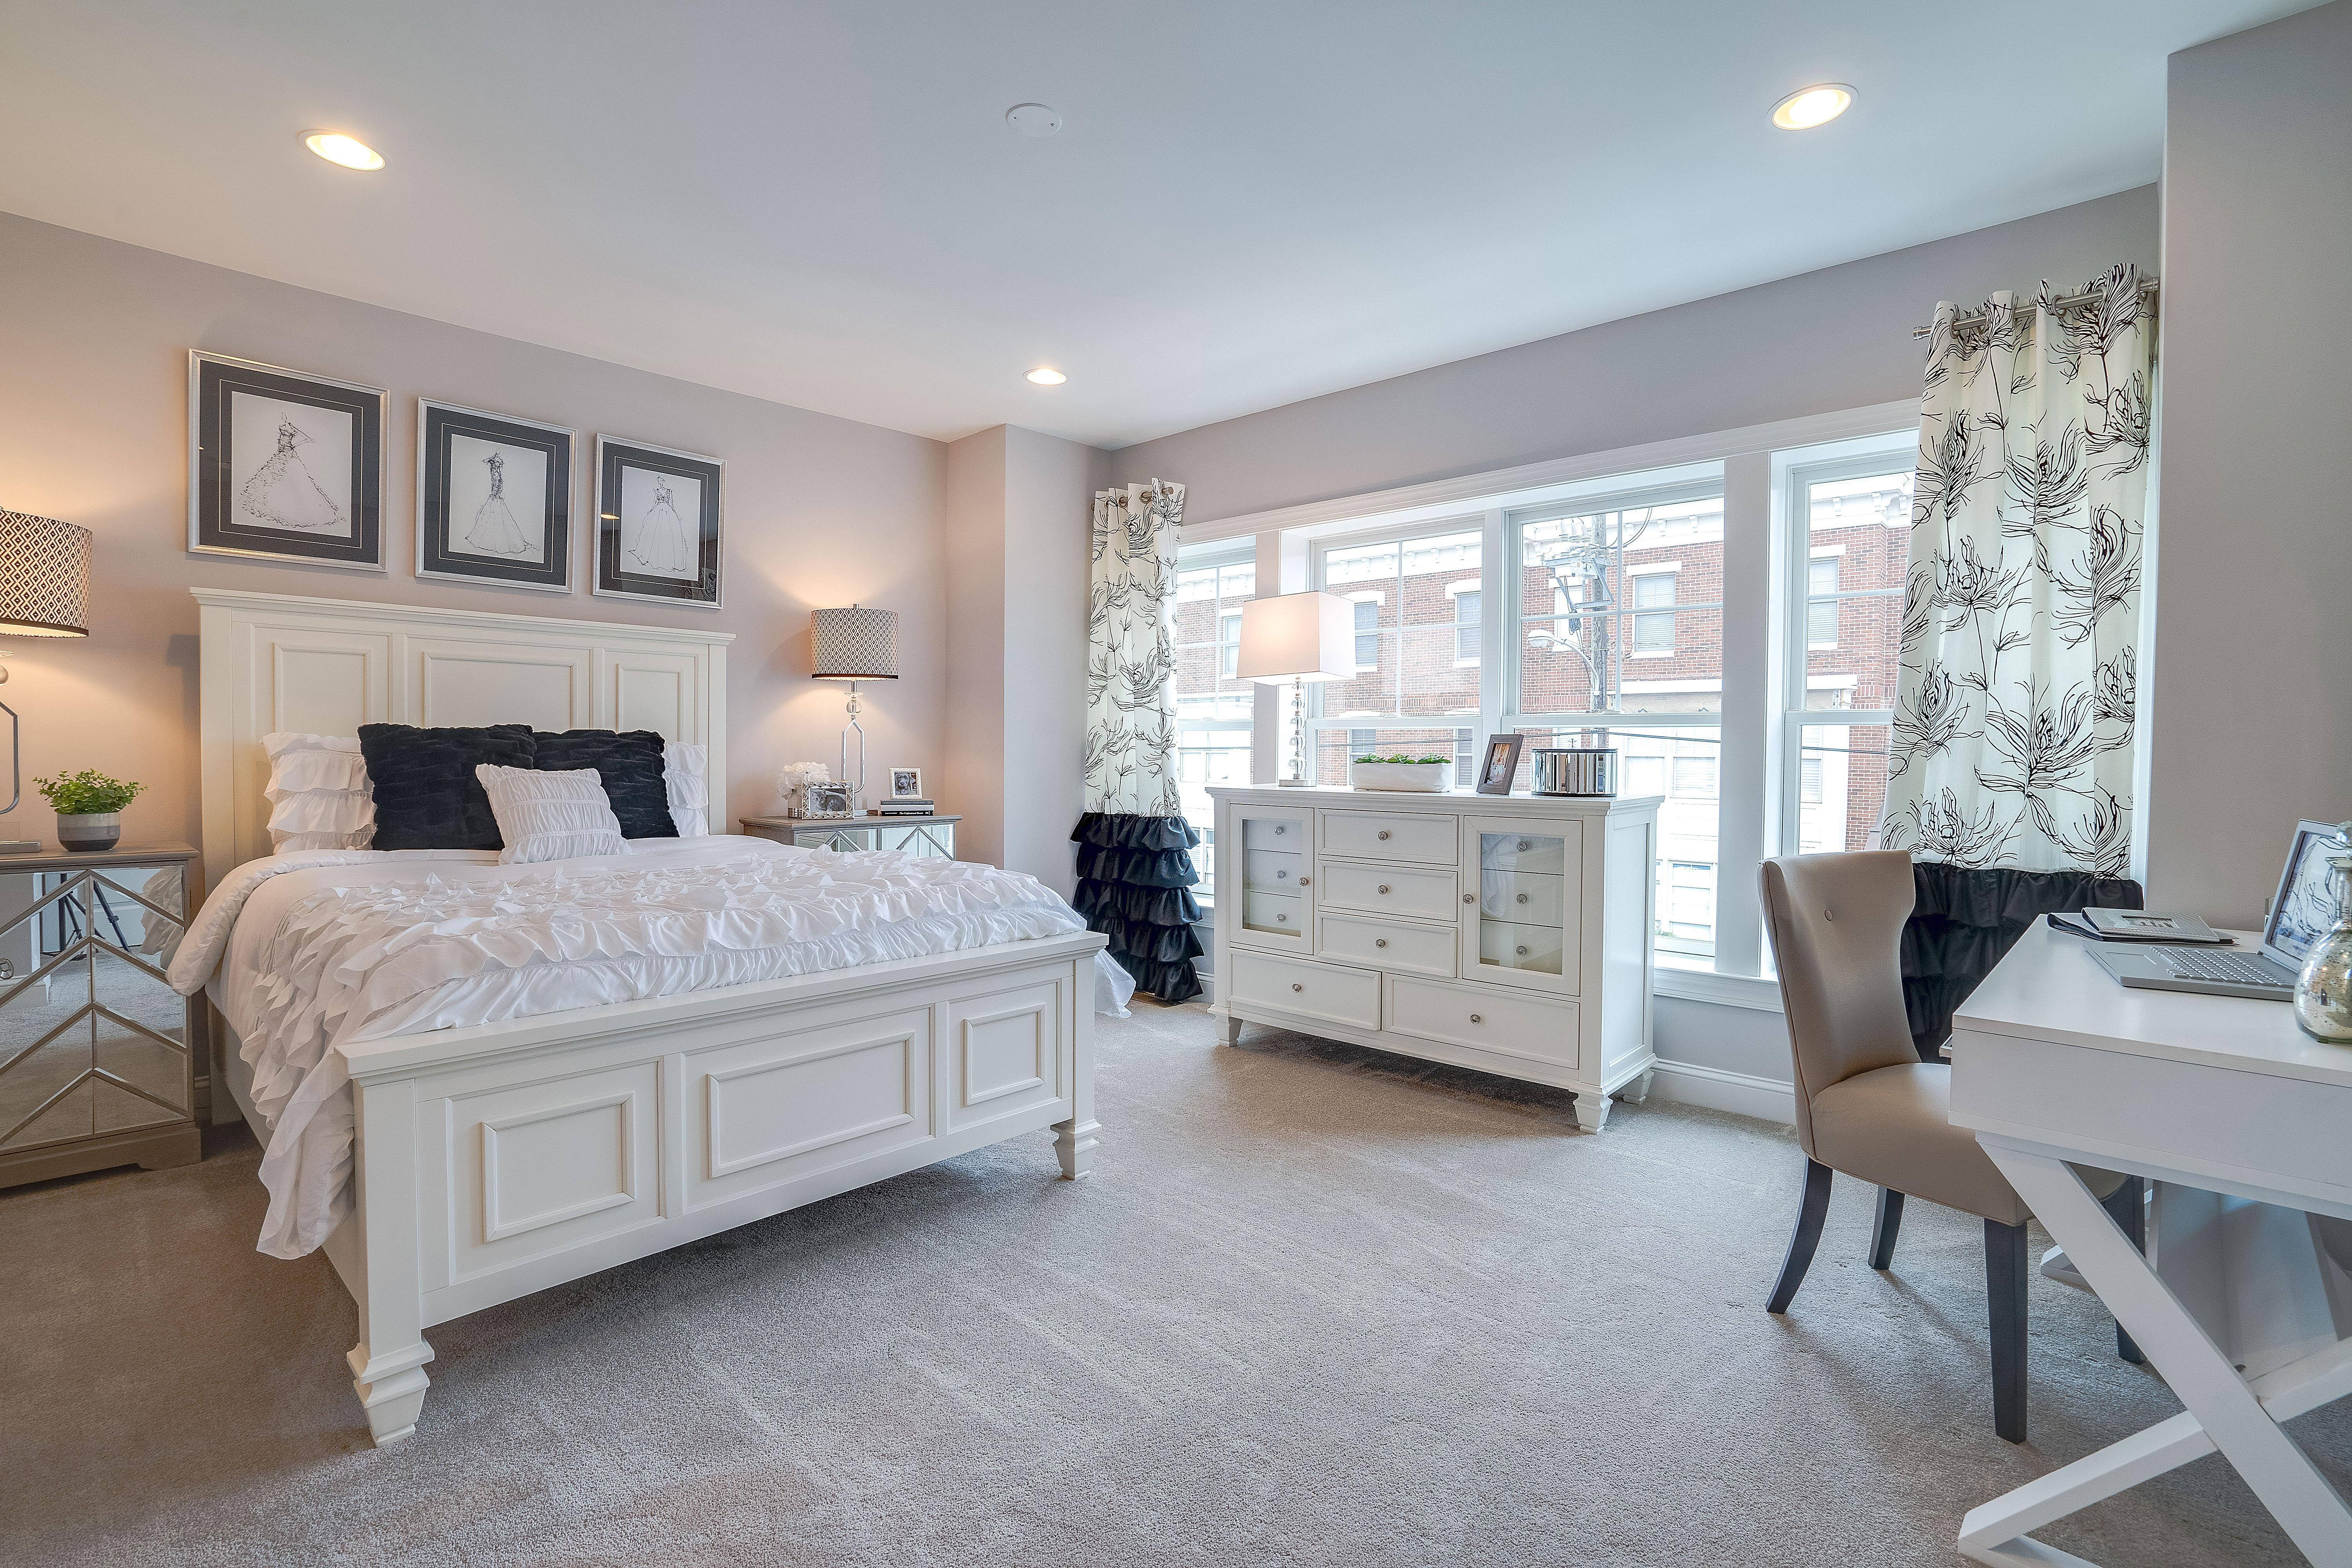 Bedroom featured in the Bella By Judd Builders and Developers in Philadelphia, PA